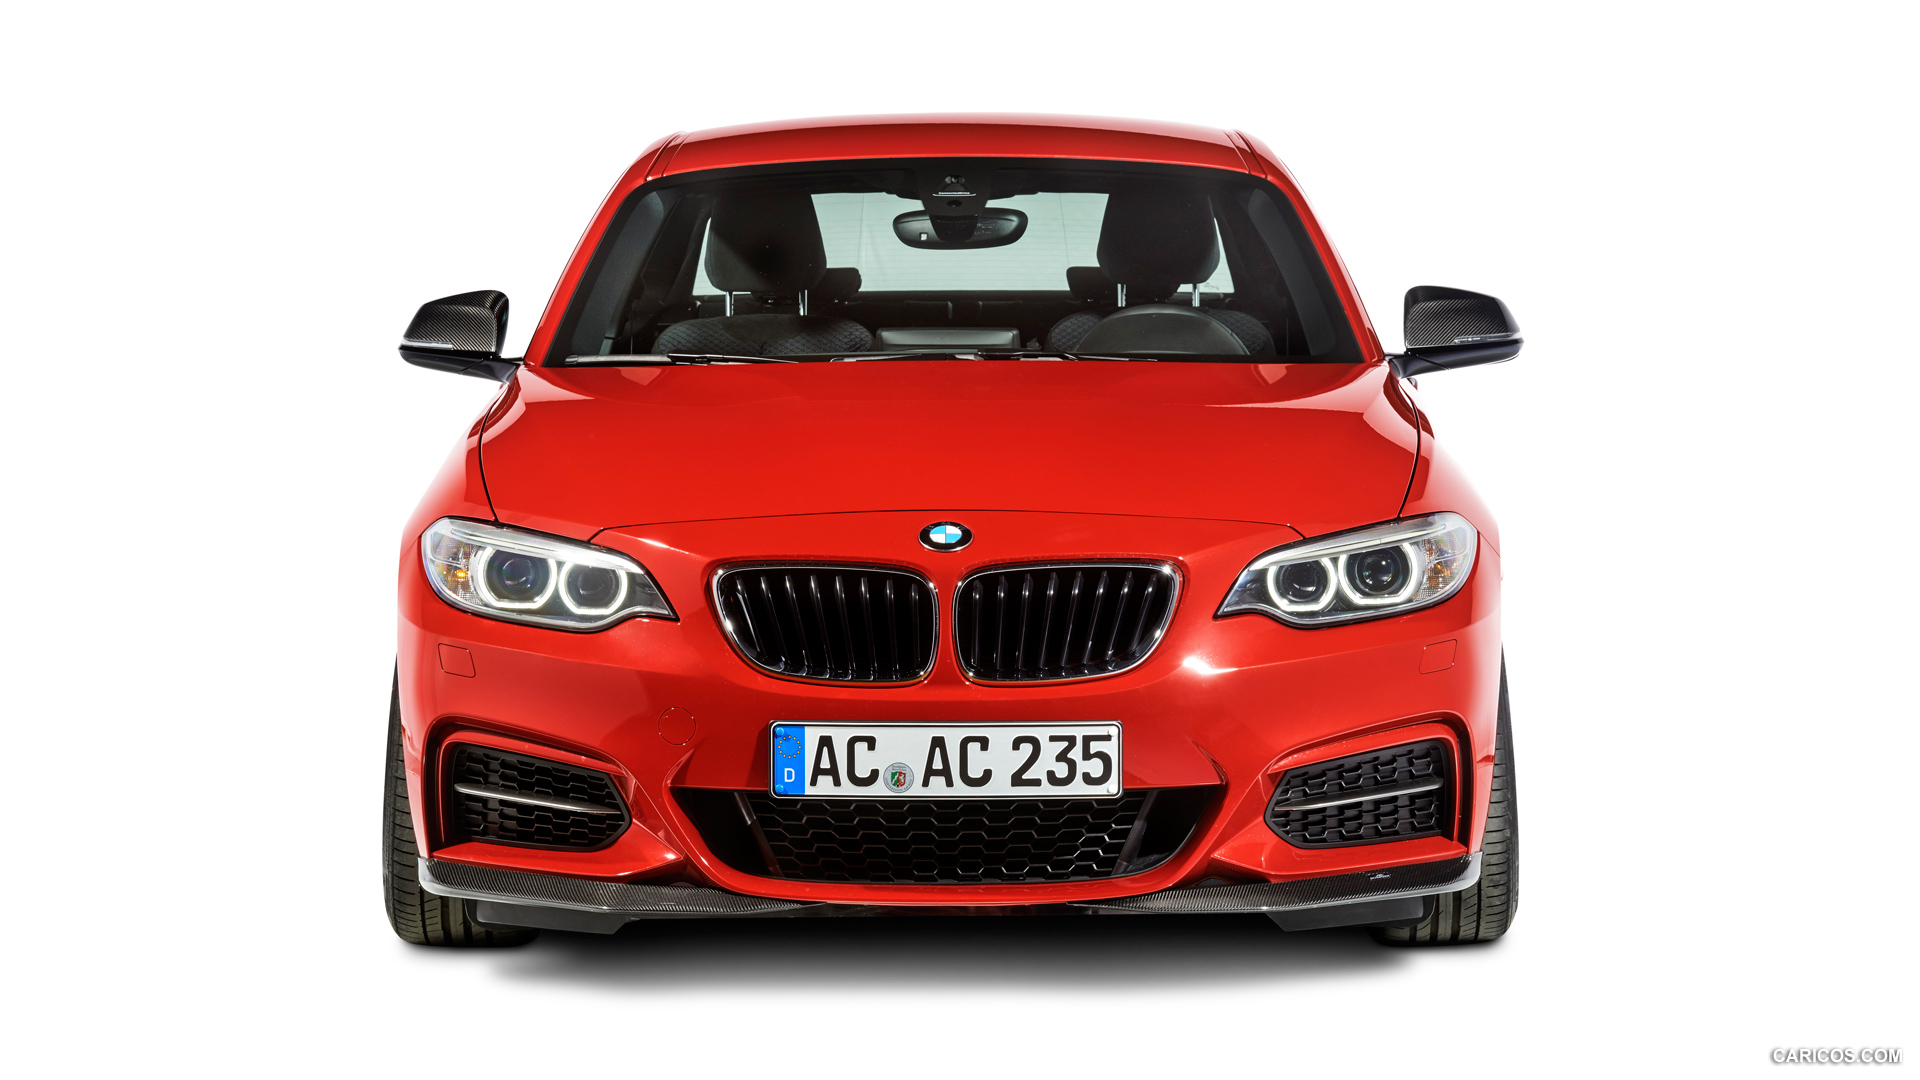 Ac Schnitzer Bmw 2 Series Coupe Photos Photo Gallery Page 2 Carsbase Com